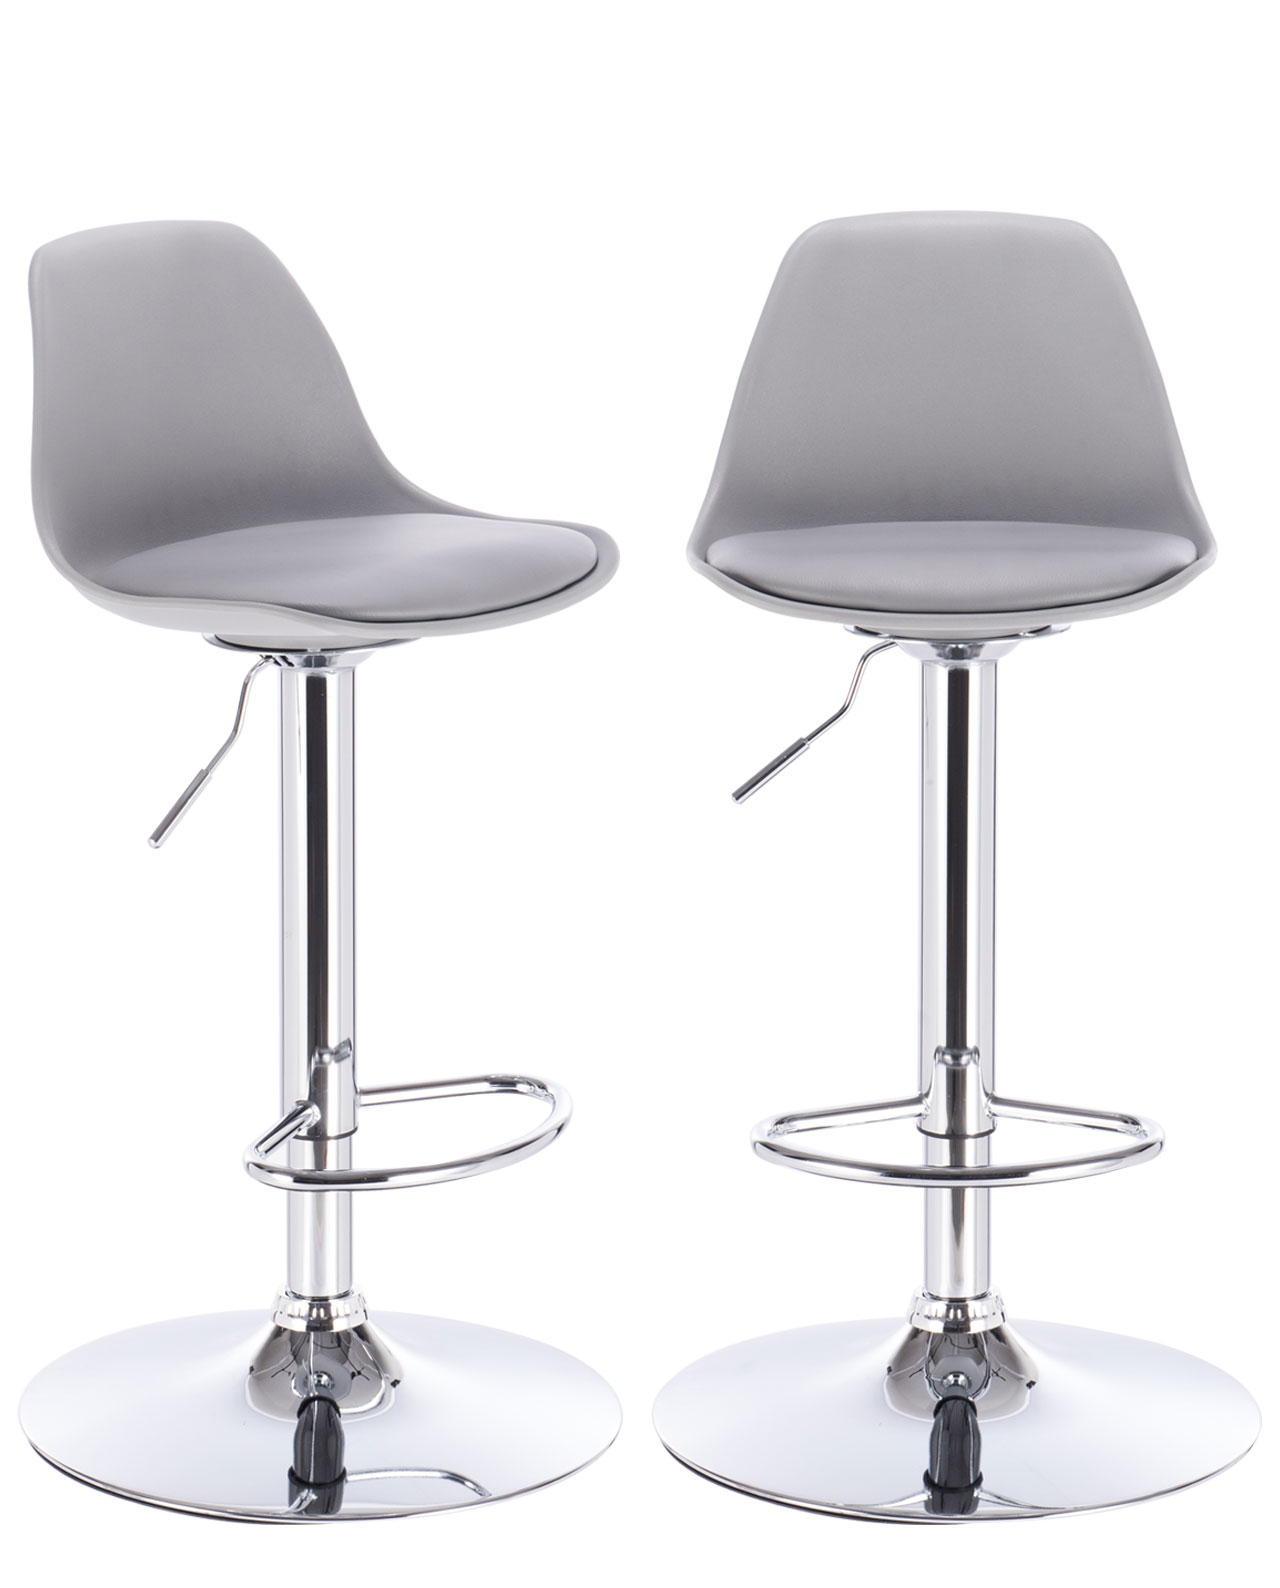 Tabouret De Bar Gris Clair Sig Lot De 2 Tabourets De Bar Design